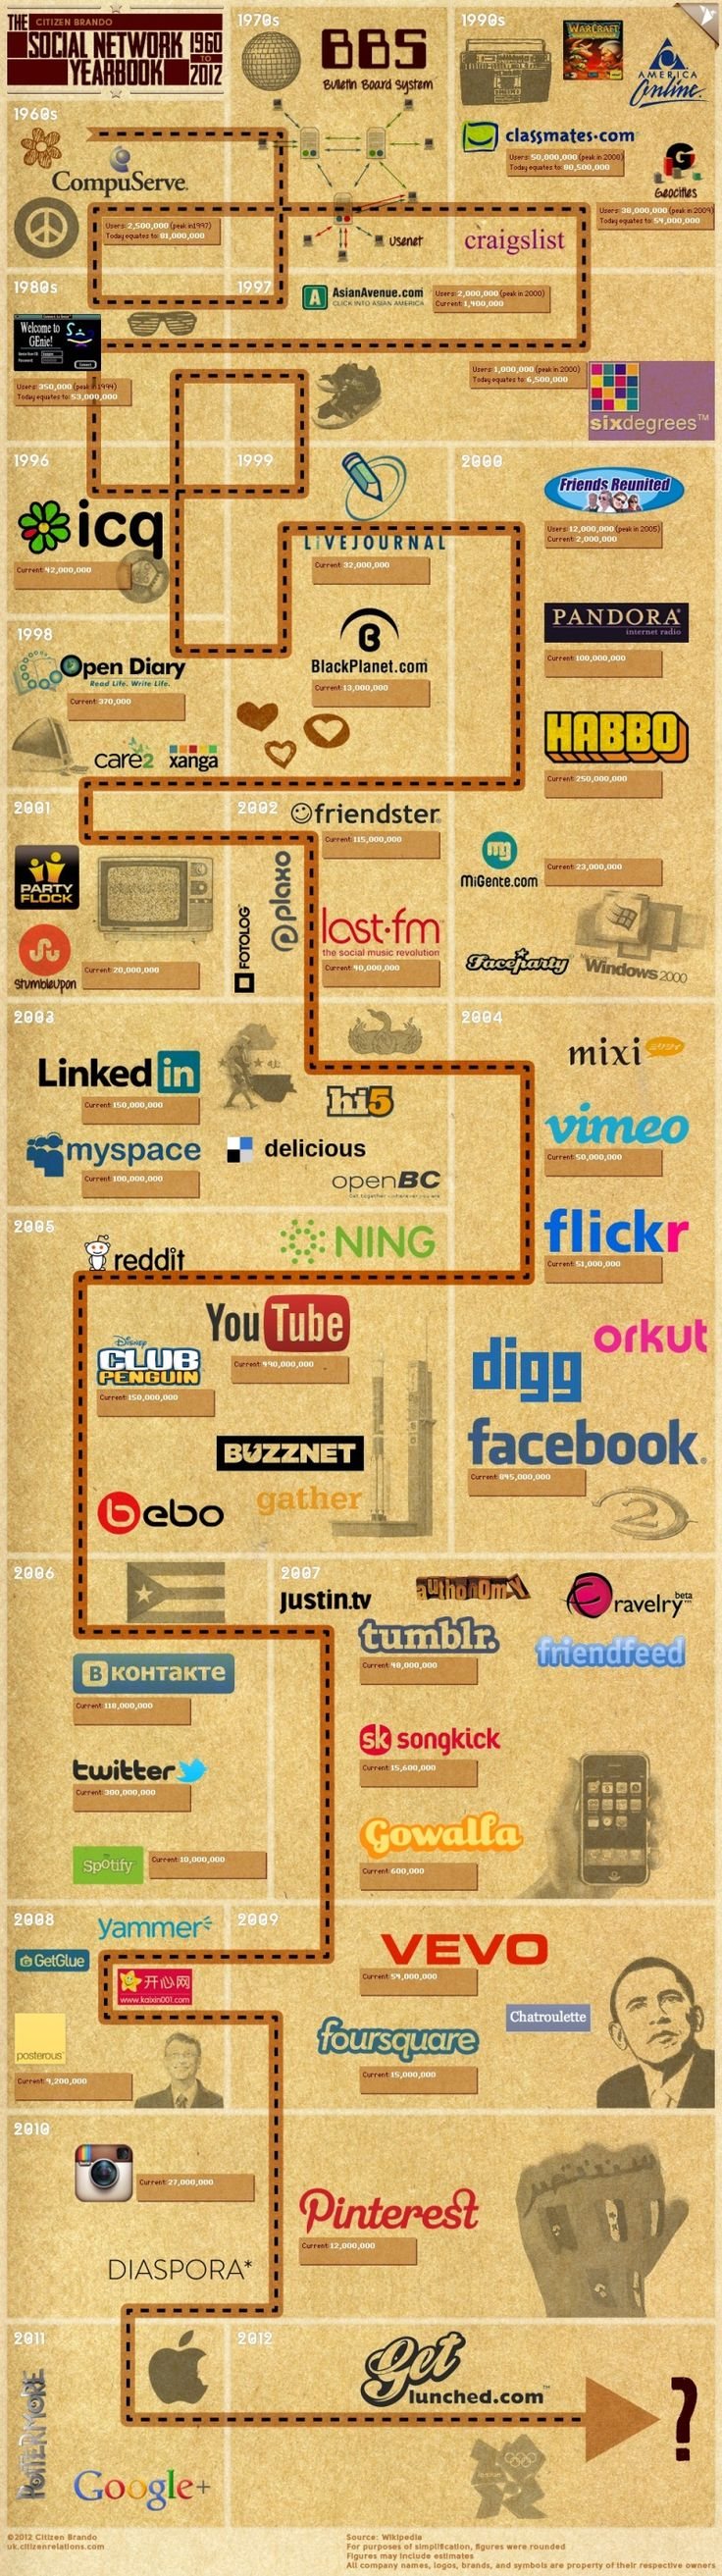 Complete History of Social Networks: Some of these take me way back!